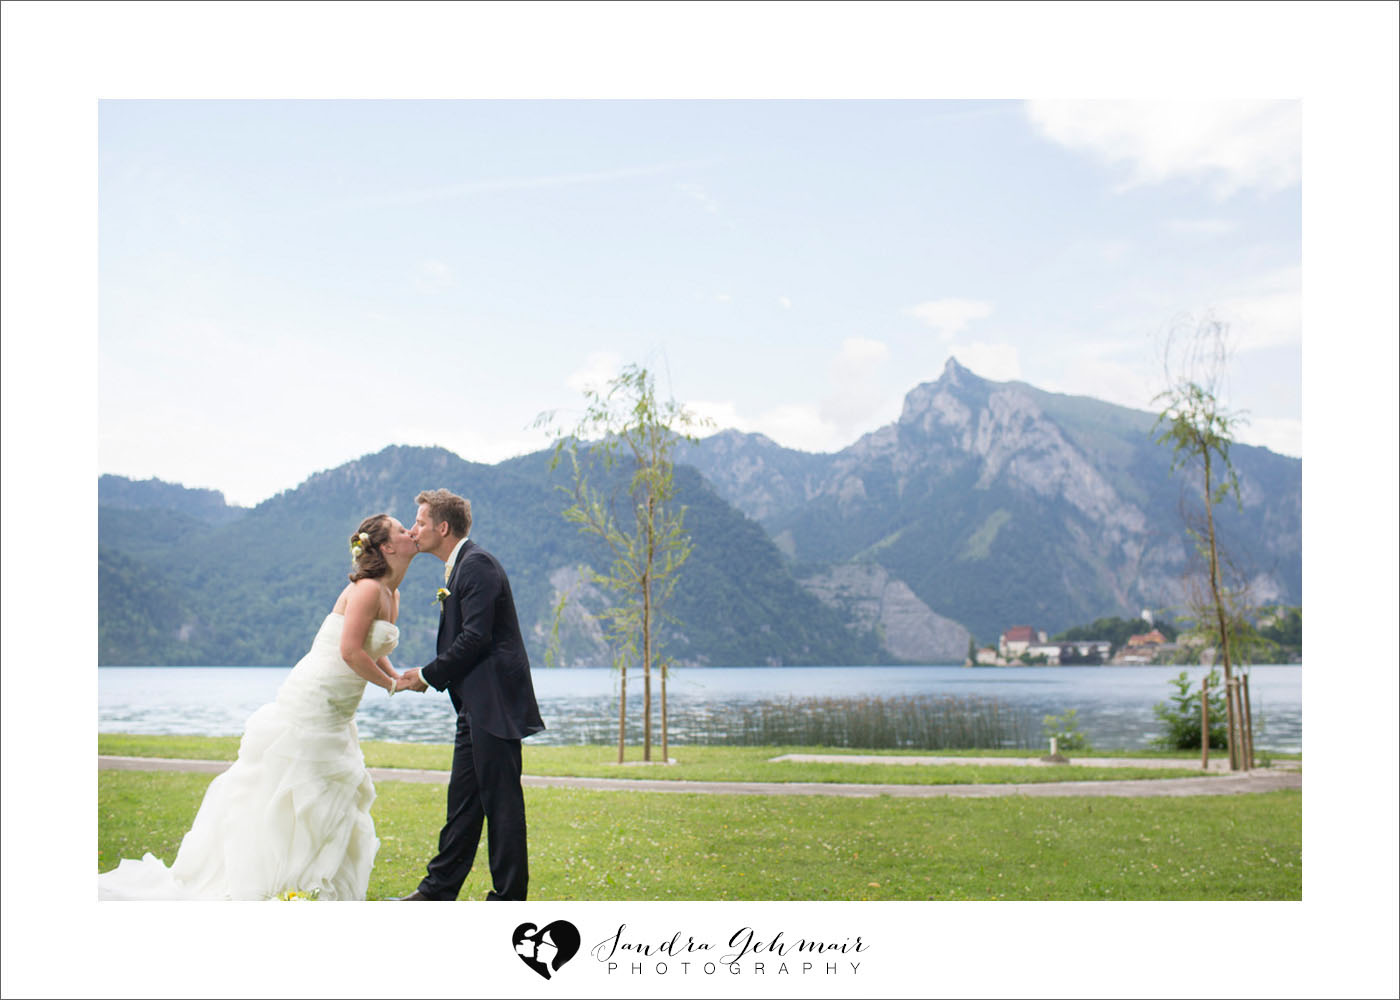 041_heiraten_am_see_spitzvilla_sandra_gehmair